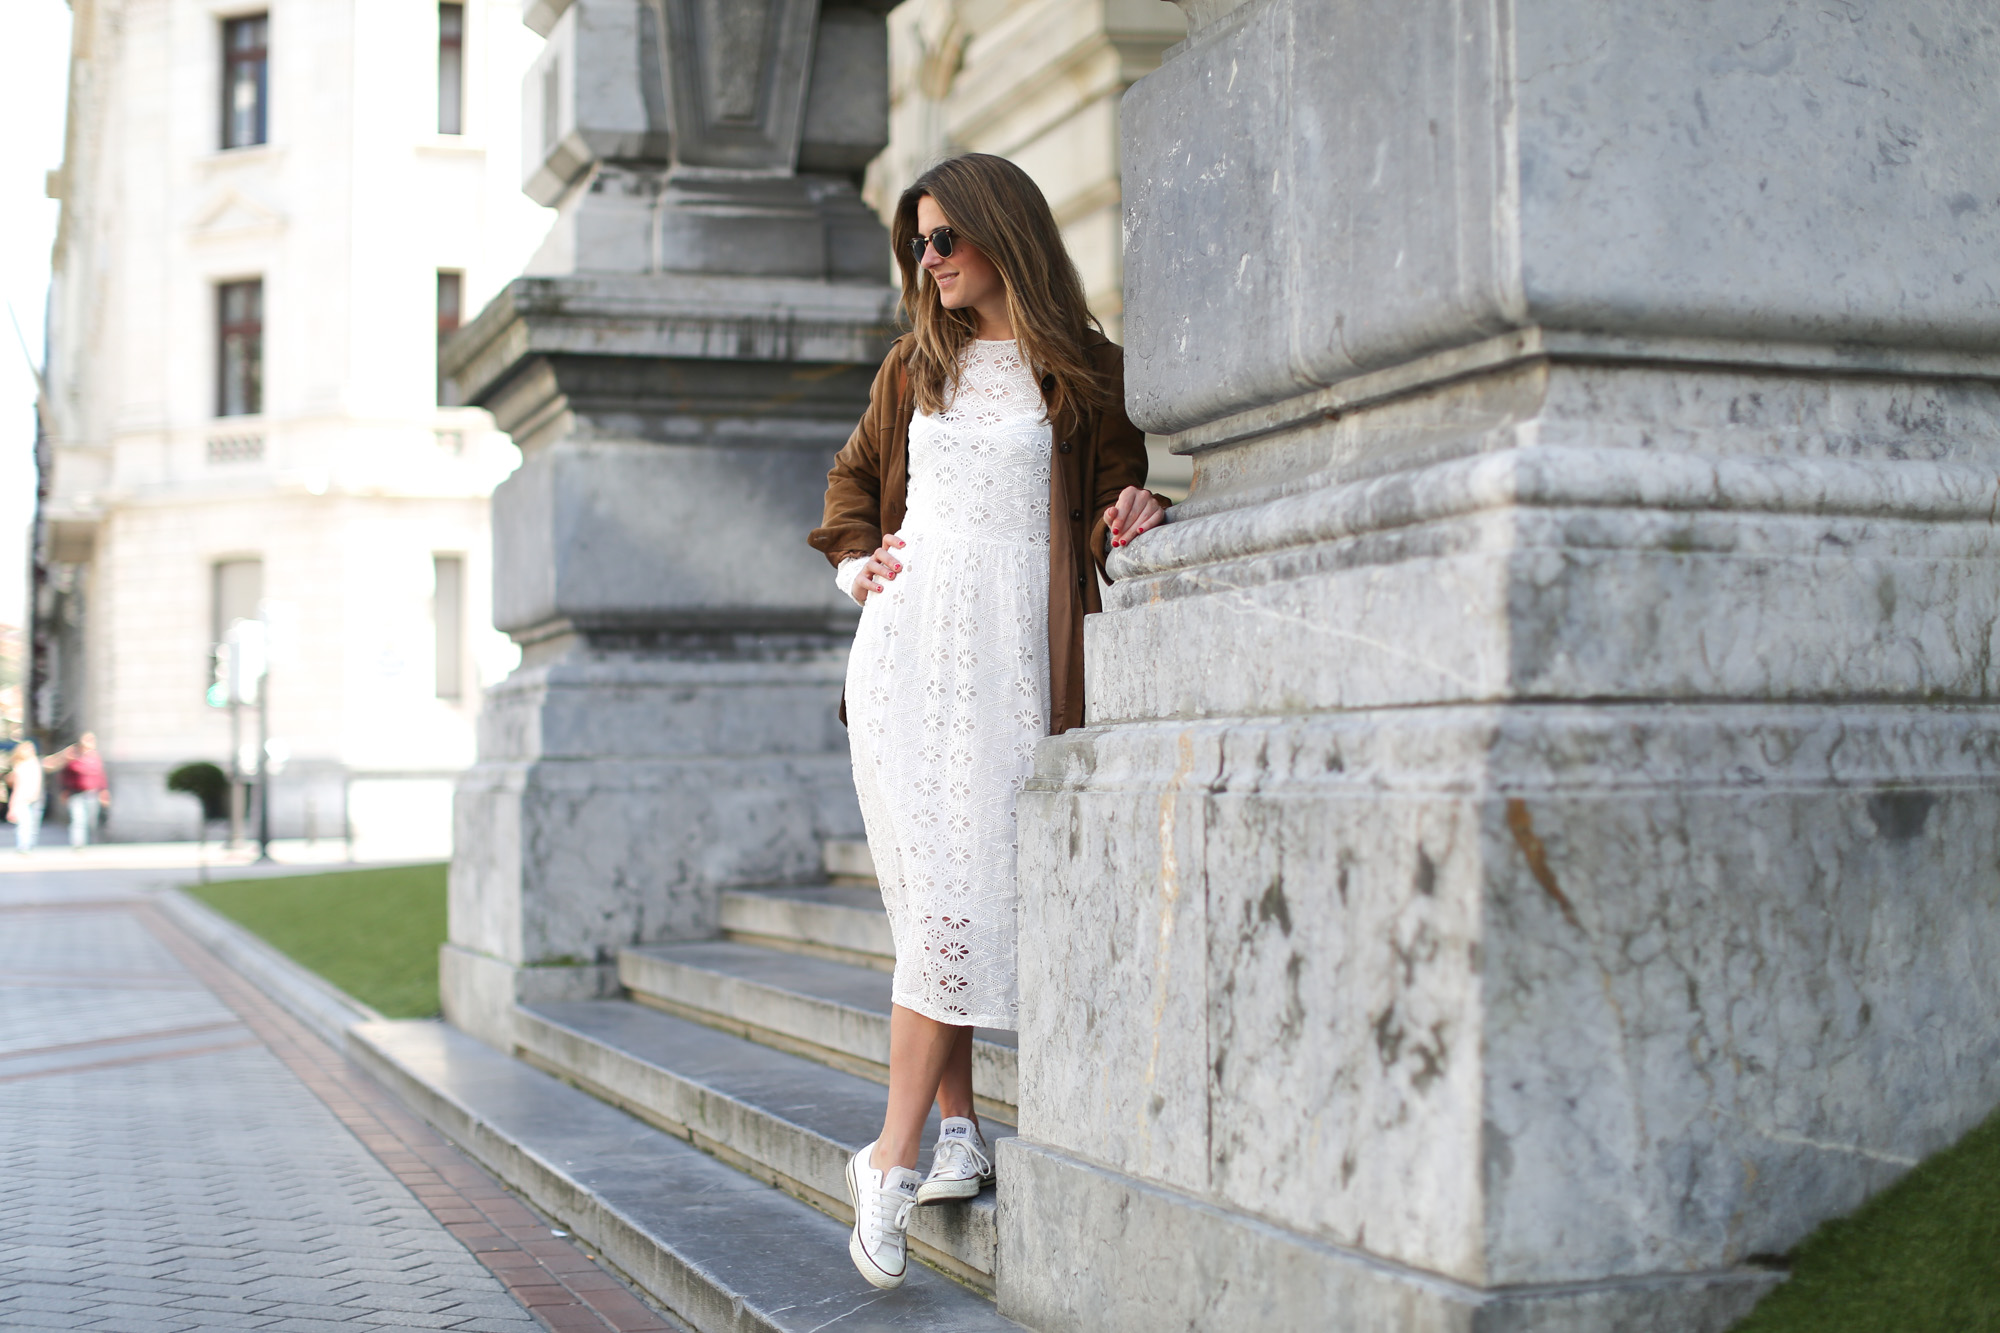 Clochet-streetstyle-zara-white-midi-embroidered-dress-with-full-skirt-suede-vintage-jacket-2